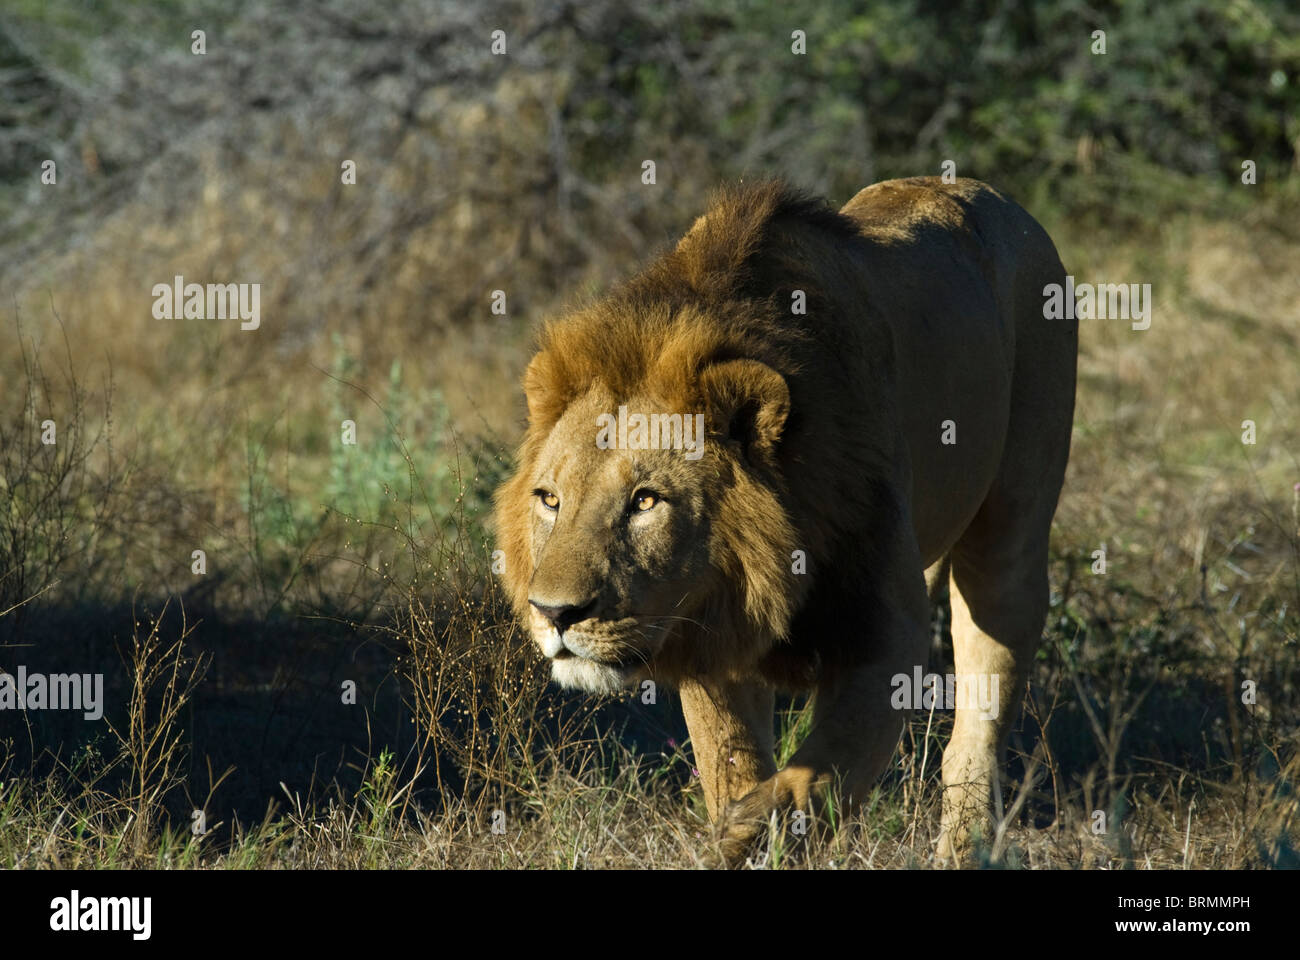 Male Lion walking with head lowered - Stock Image